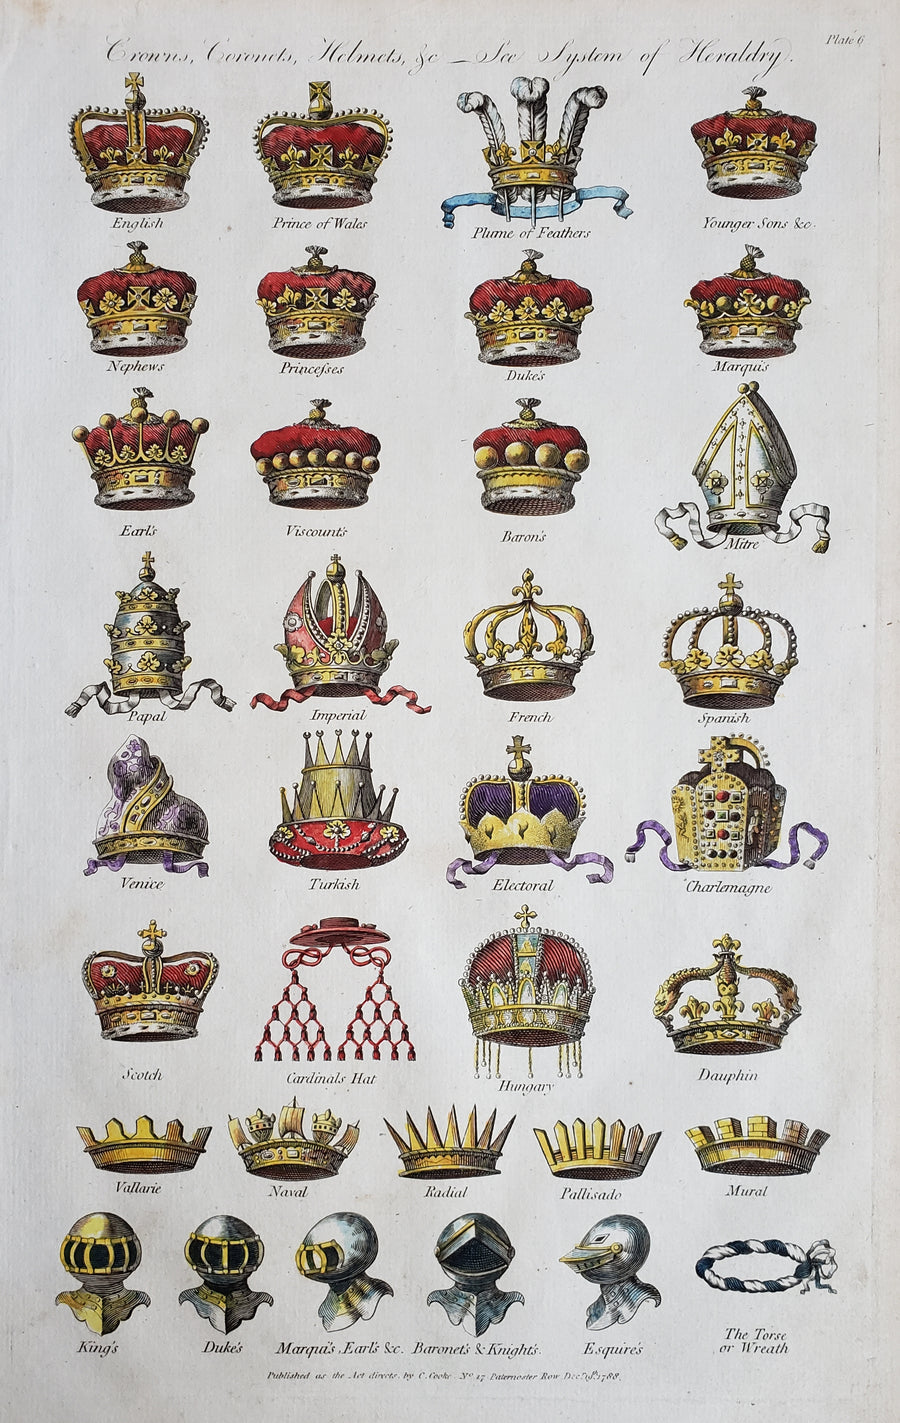 Antique Print - Crowns, Coronets, Helmets by Percibal Barlow 1789